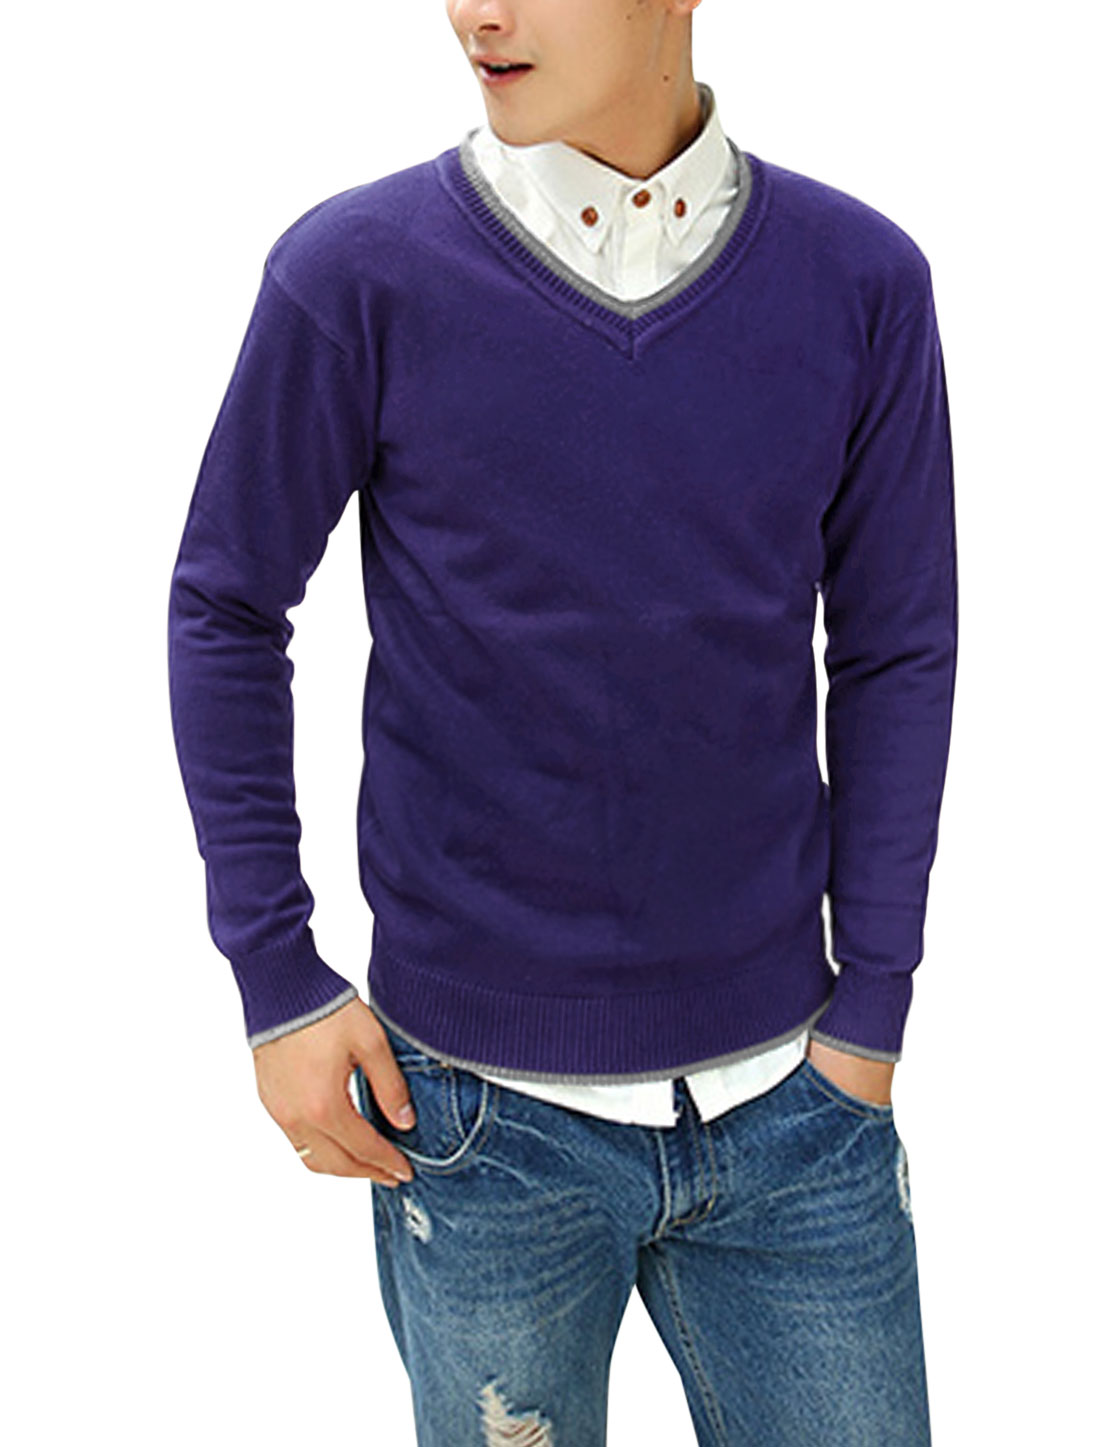 Men Ribbed Trim Contrast Collar Patched Detail Casual Cozy Fit Sweater Purple M